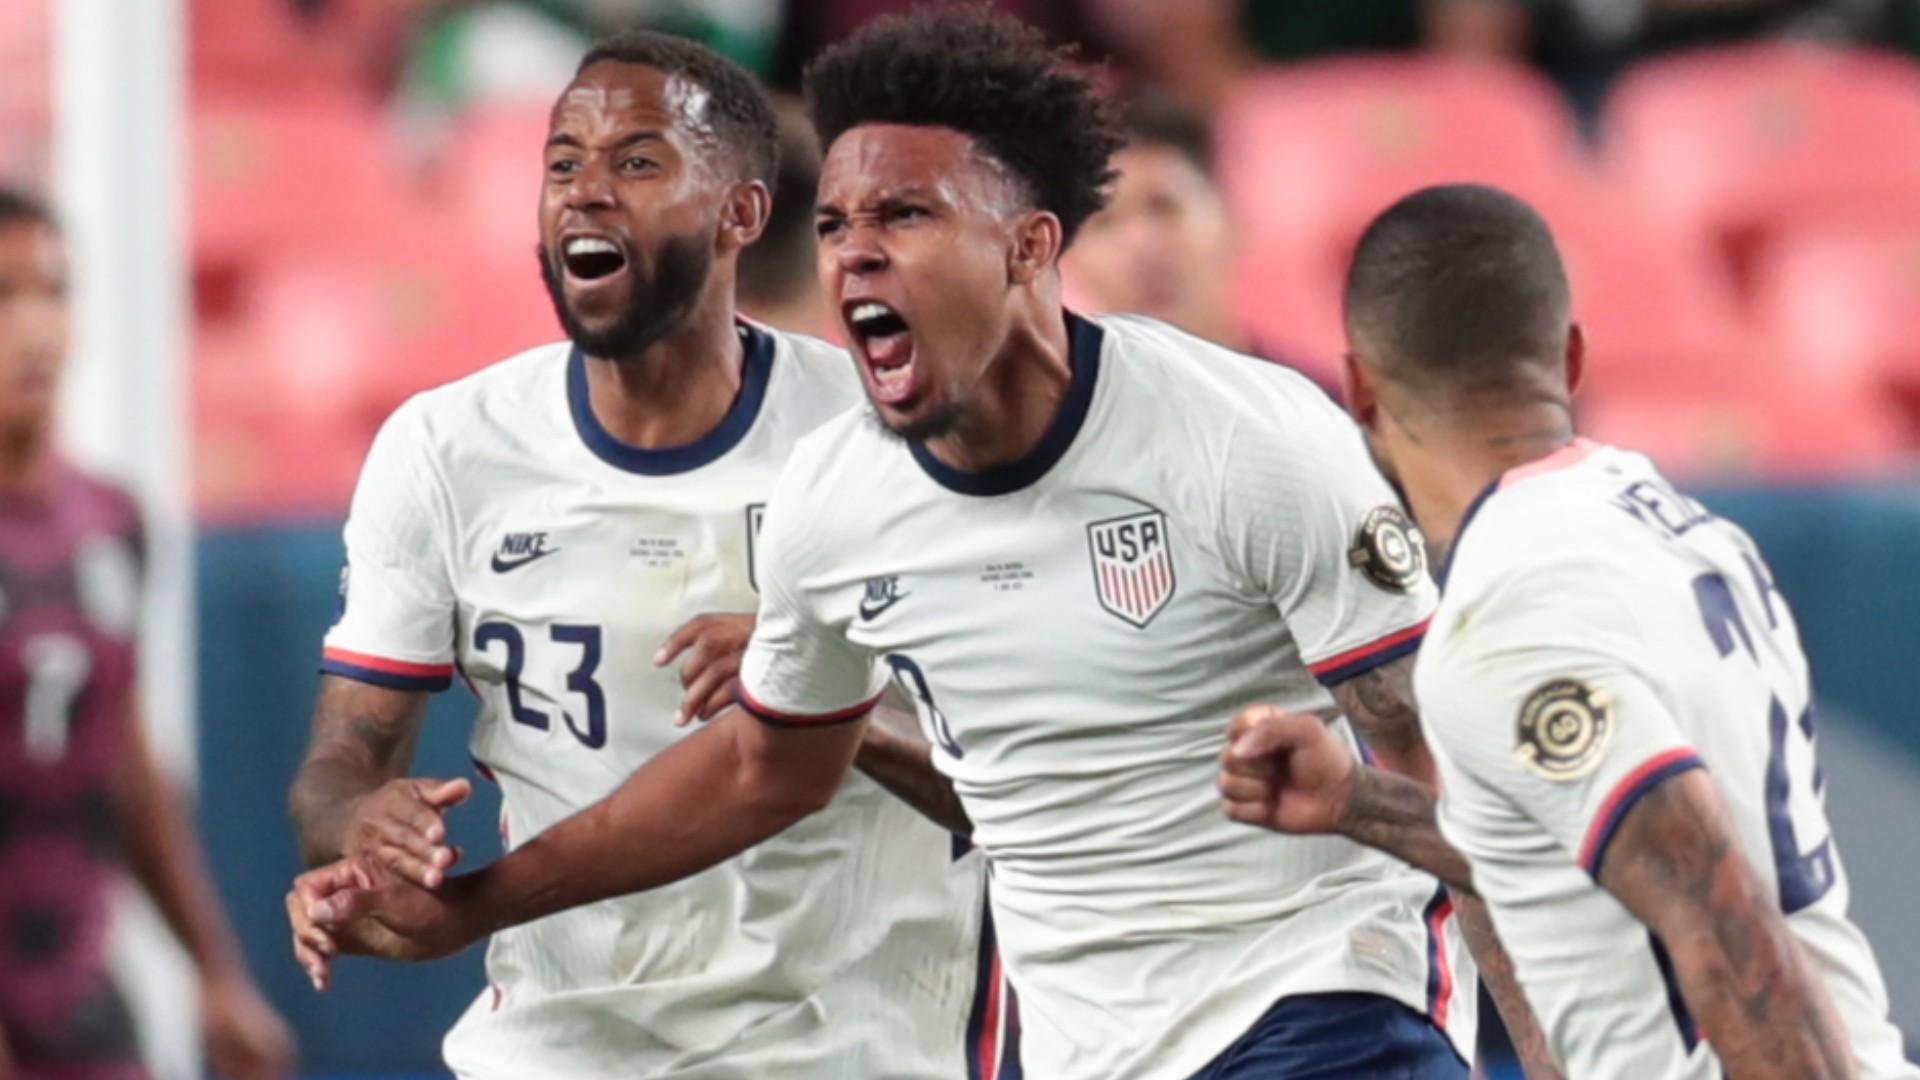 USA vs. Mexico score, results: Christian Pulisic's PK goal gives USMNT dramatic win in CONCACAF Nations League final